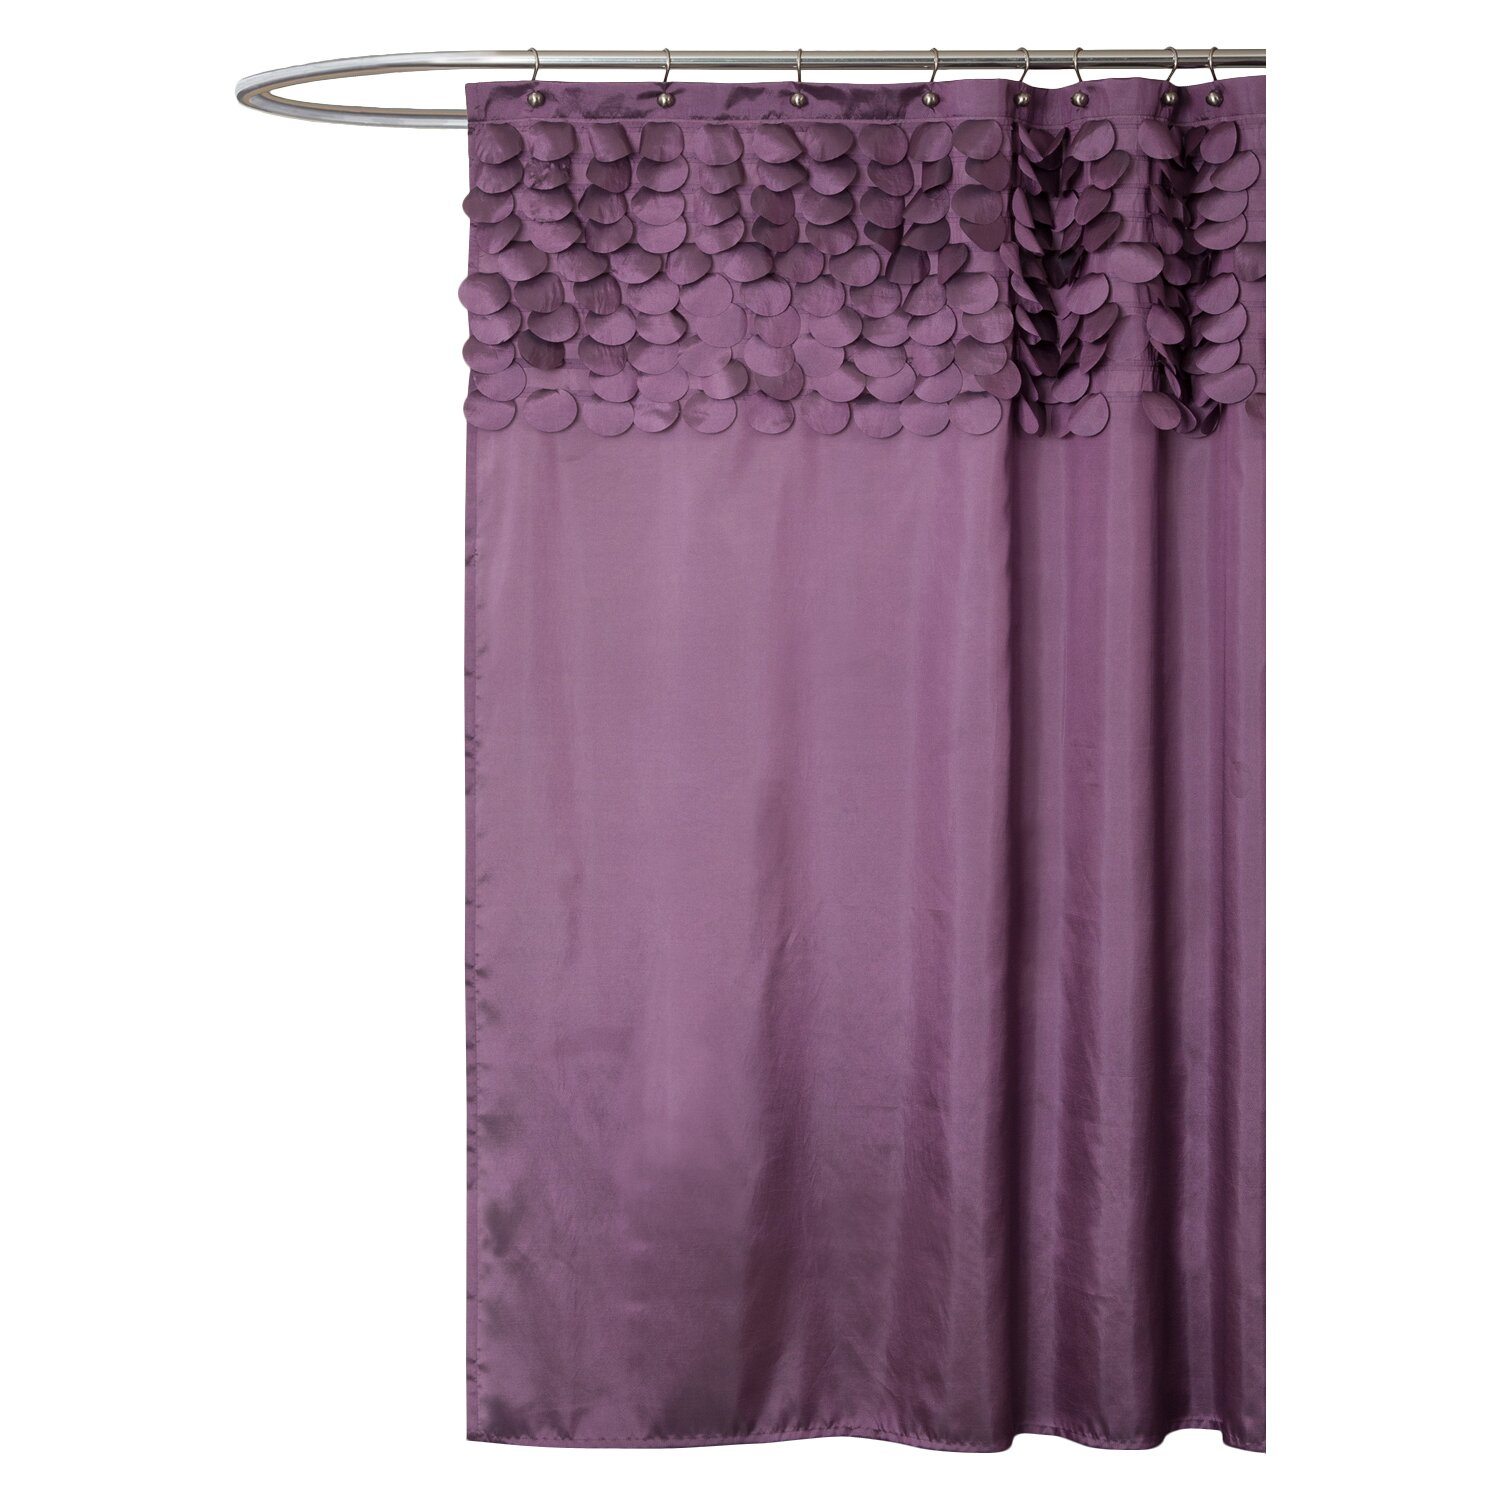 Short Shower Curtain Rod French Blue Shower Curtain